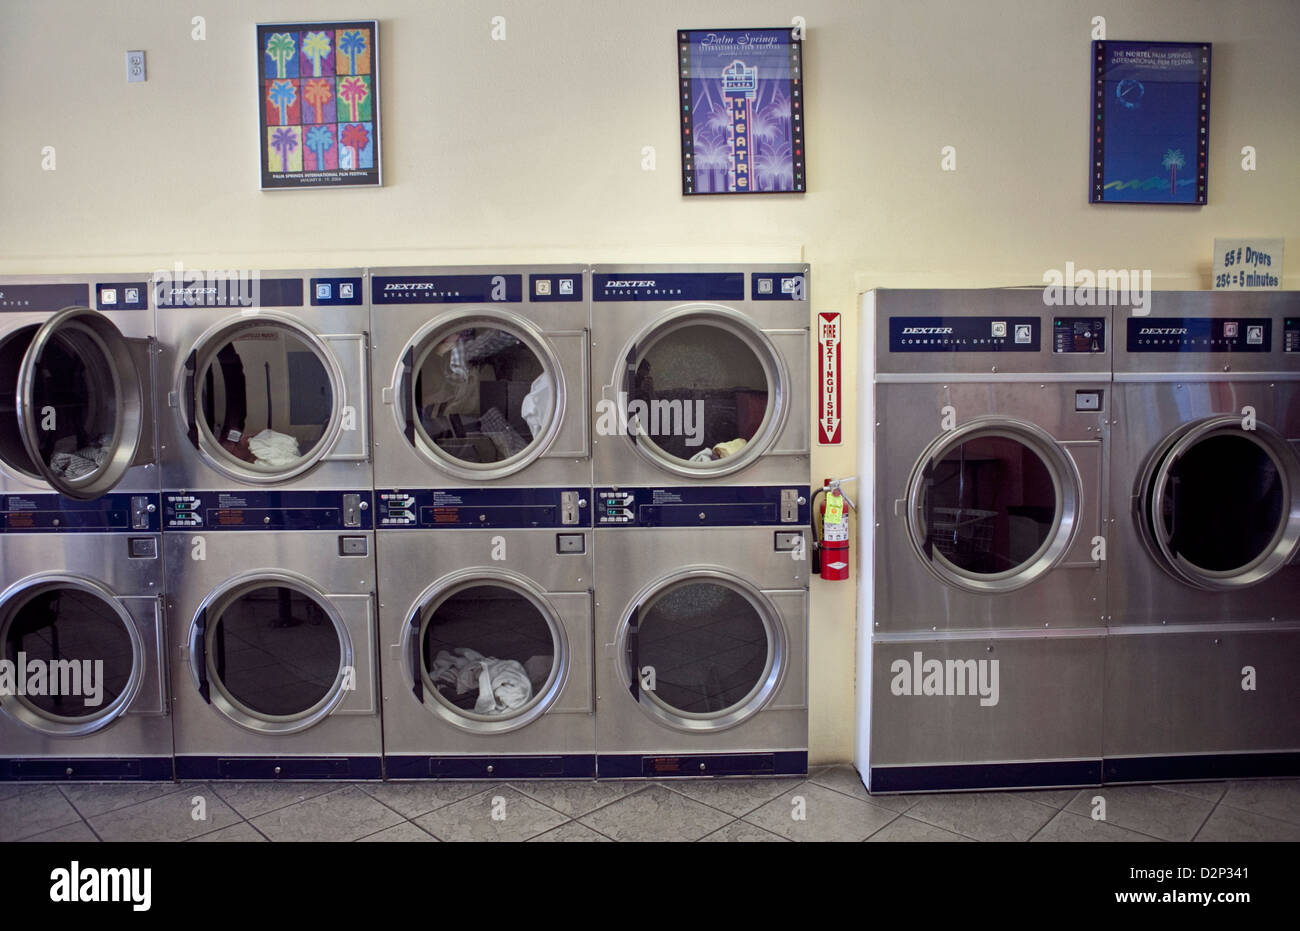 INSIDE A LAUNDROMAT IN PALM SPRINGS, CA, USA, OCT 2010 - Stock Image